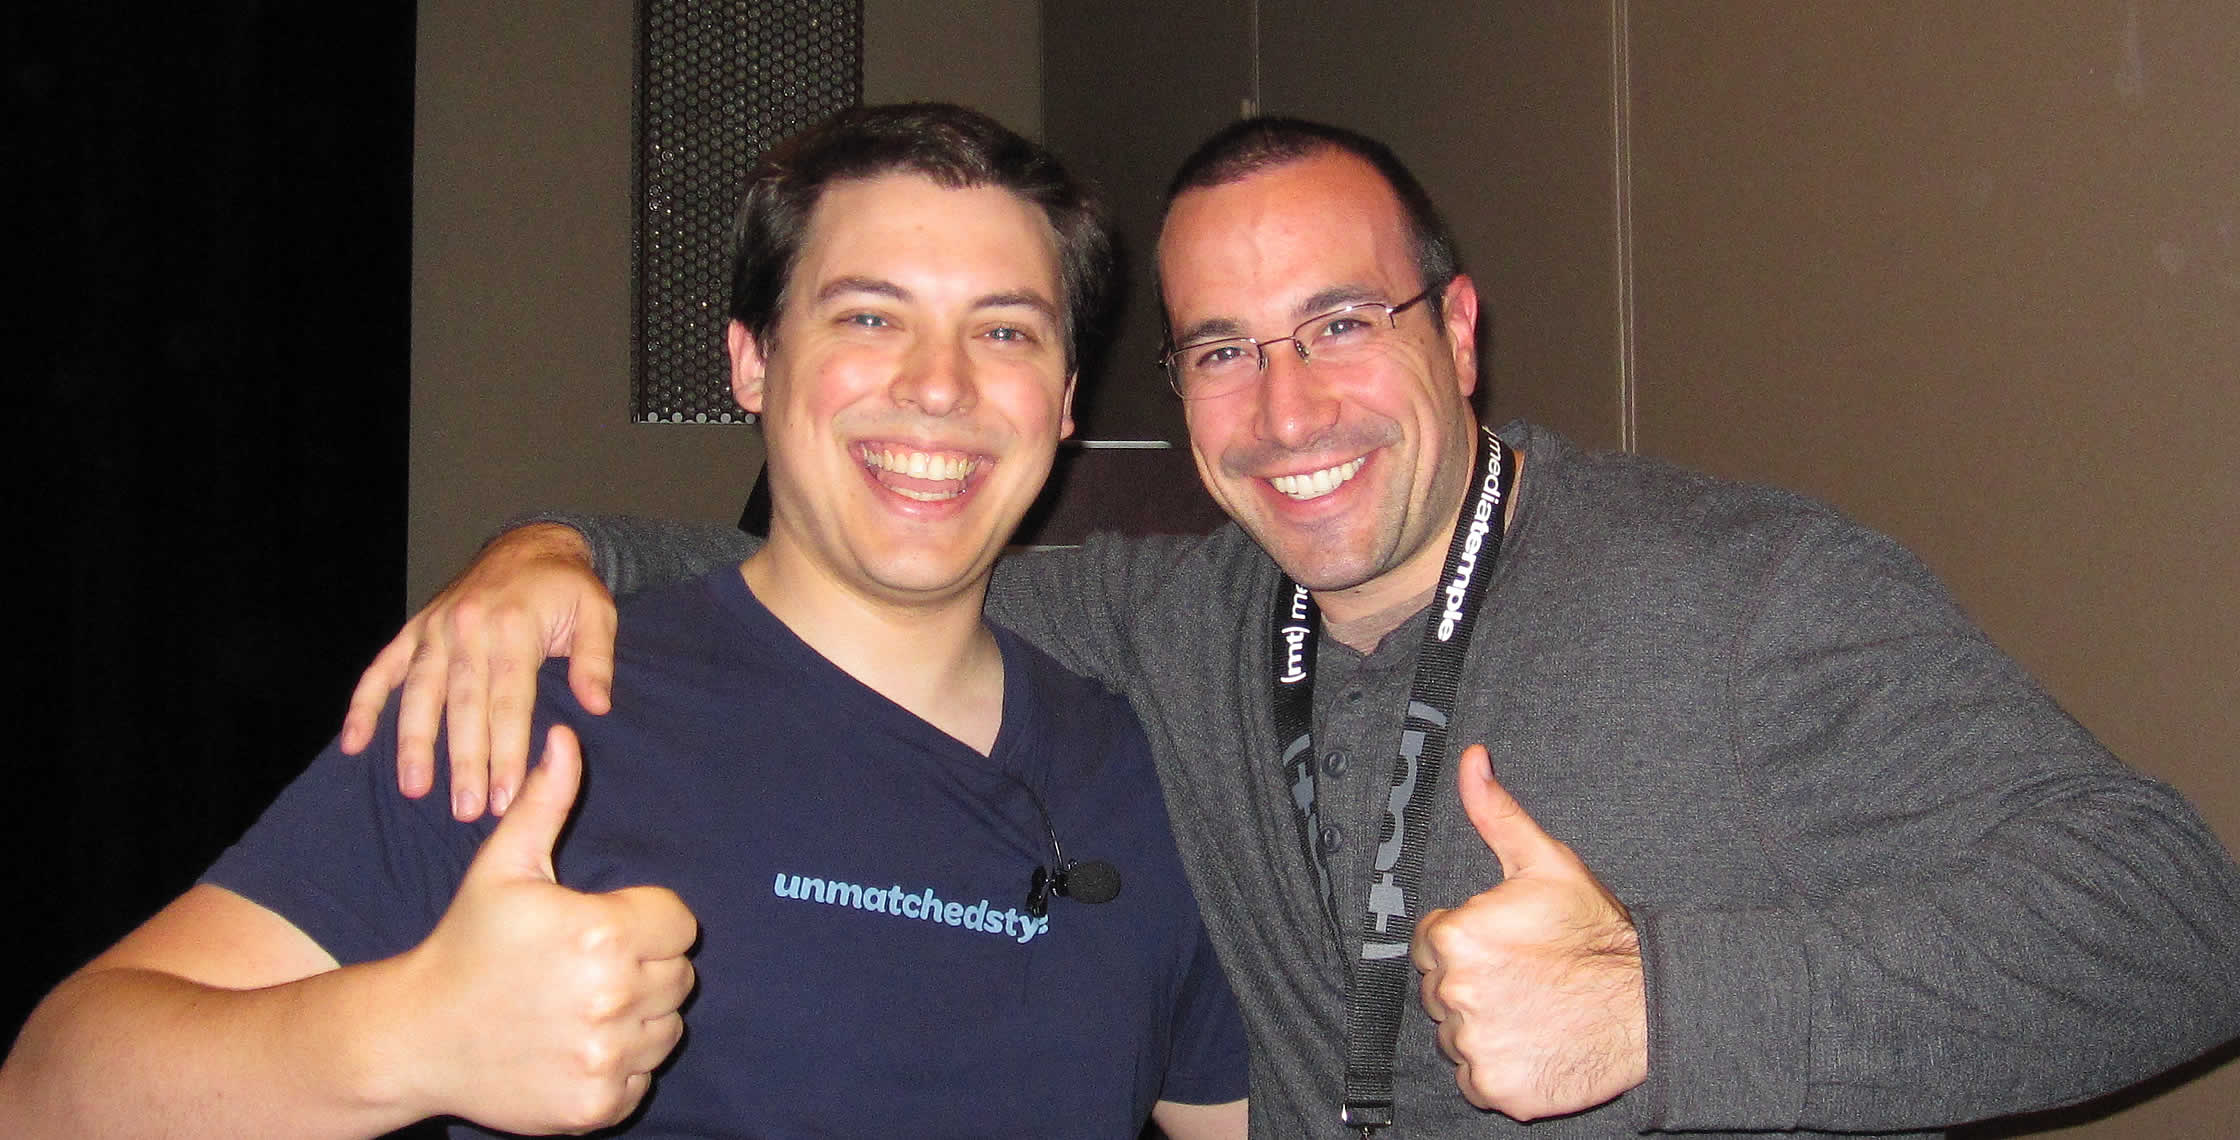 Ben Nadel at the jQuery Conference 2011 (Cambridge, MA) with: Doug Neiner